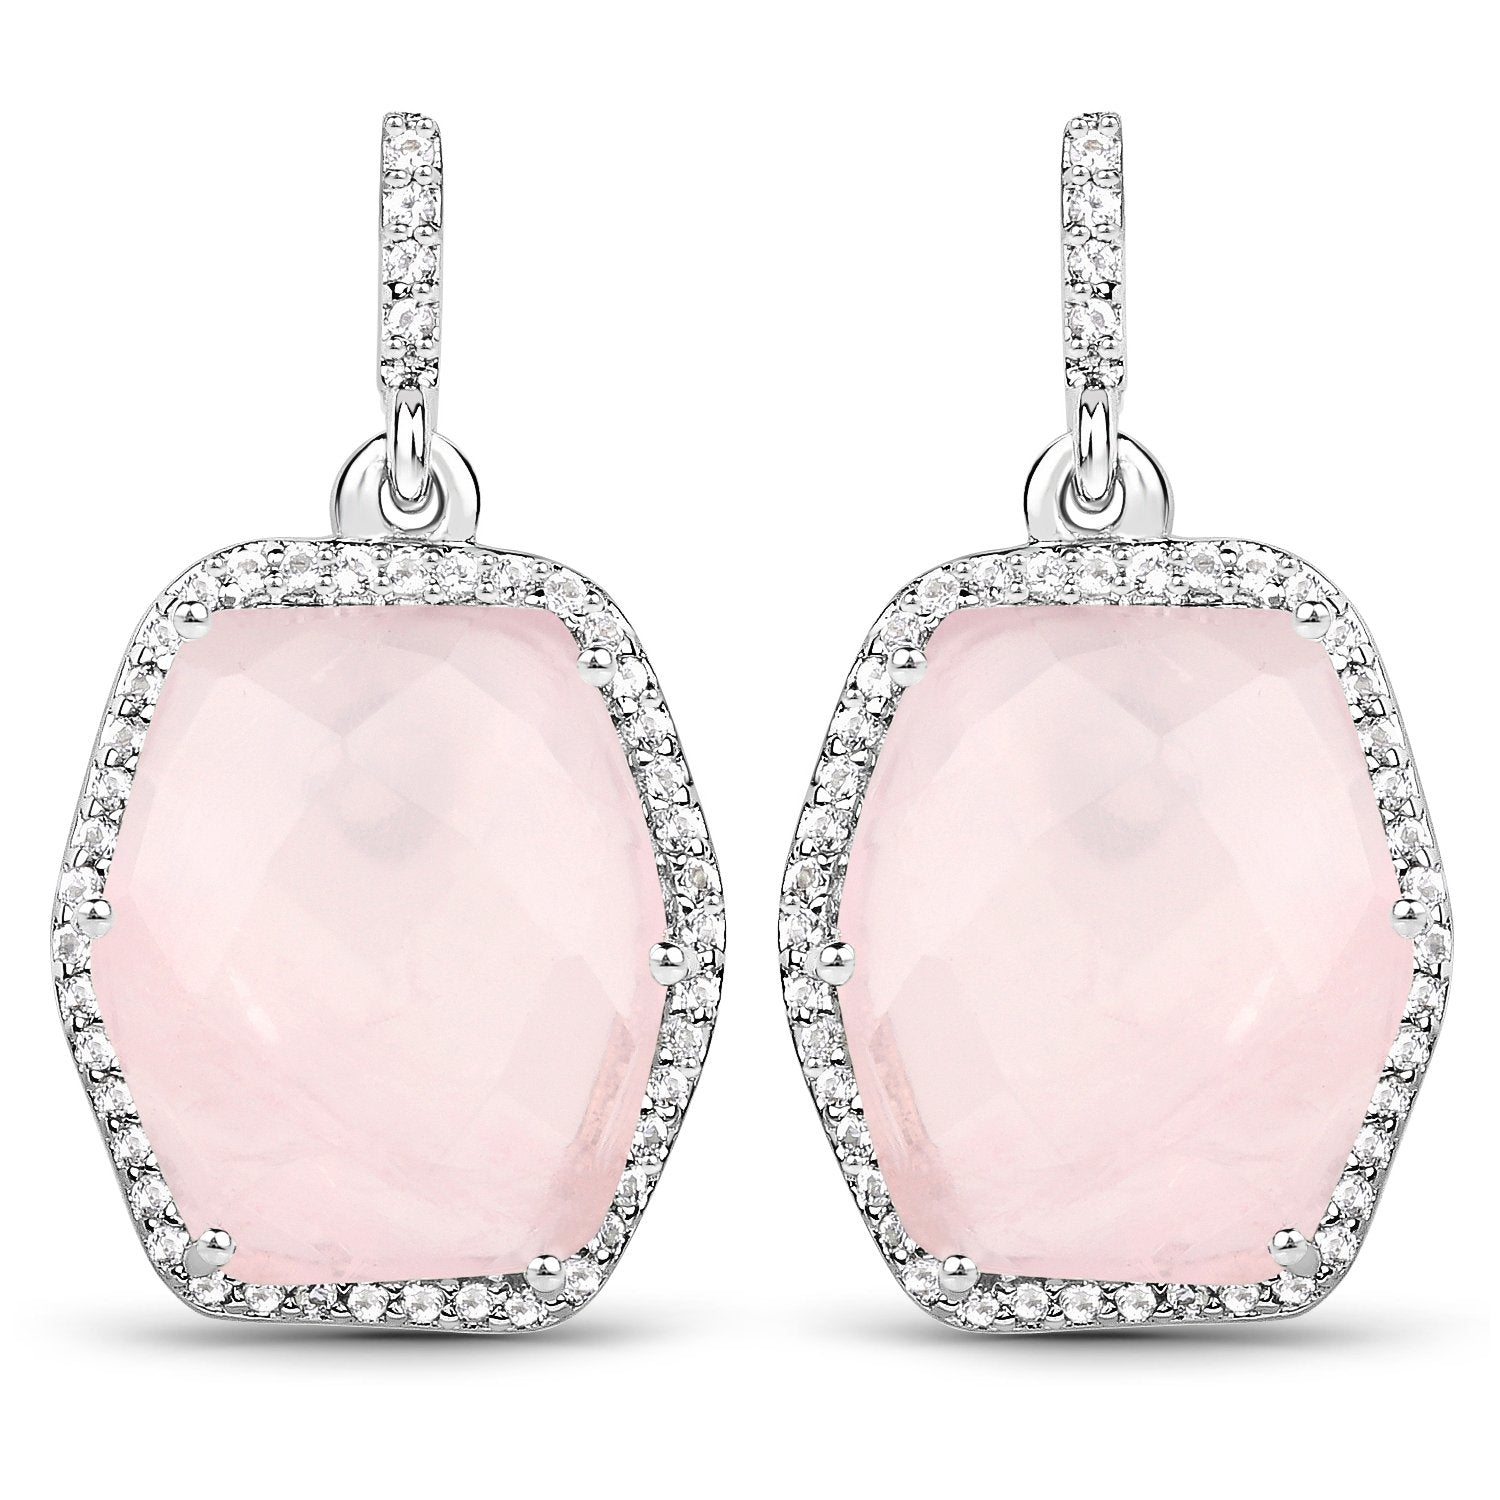 LoveHuang 13.19 Carats Genuine Rose Quartz and White Topaz Dangle Earrings Solid .925 Sterling Silver With Rhodium Plating